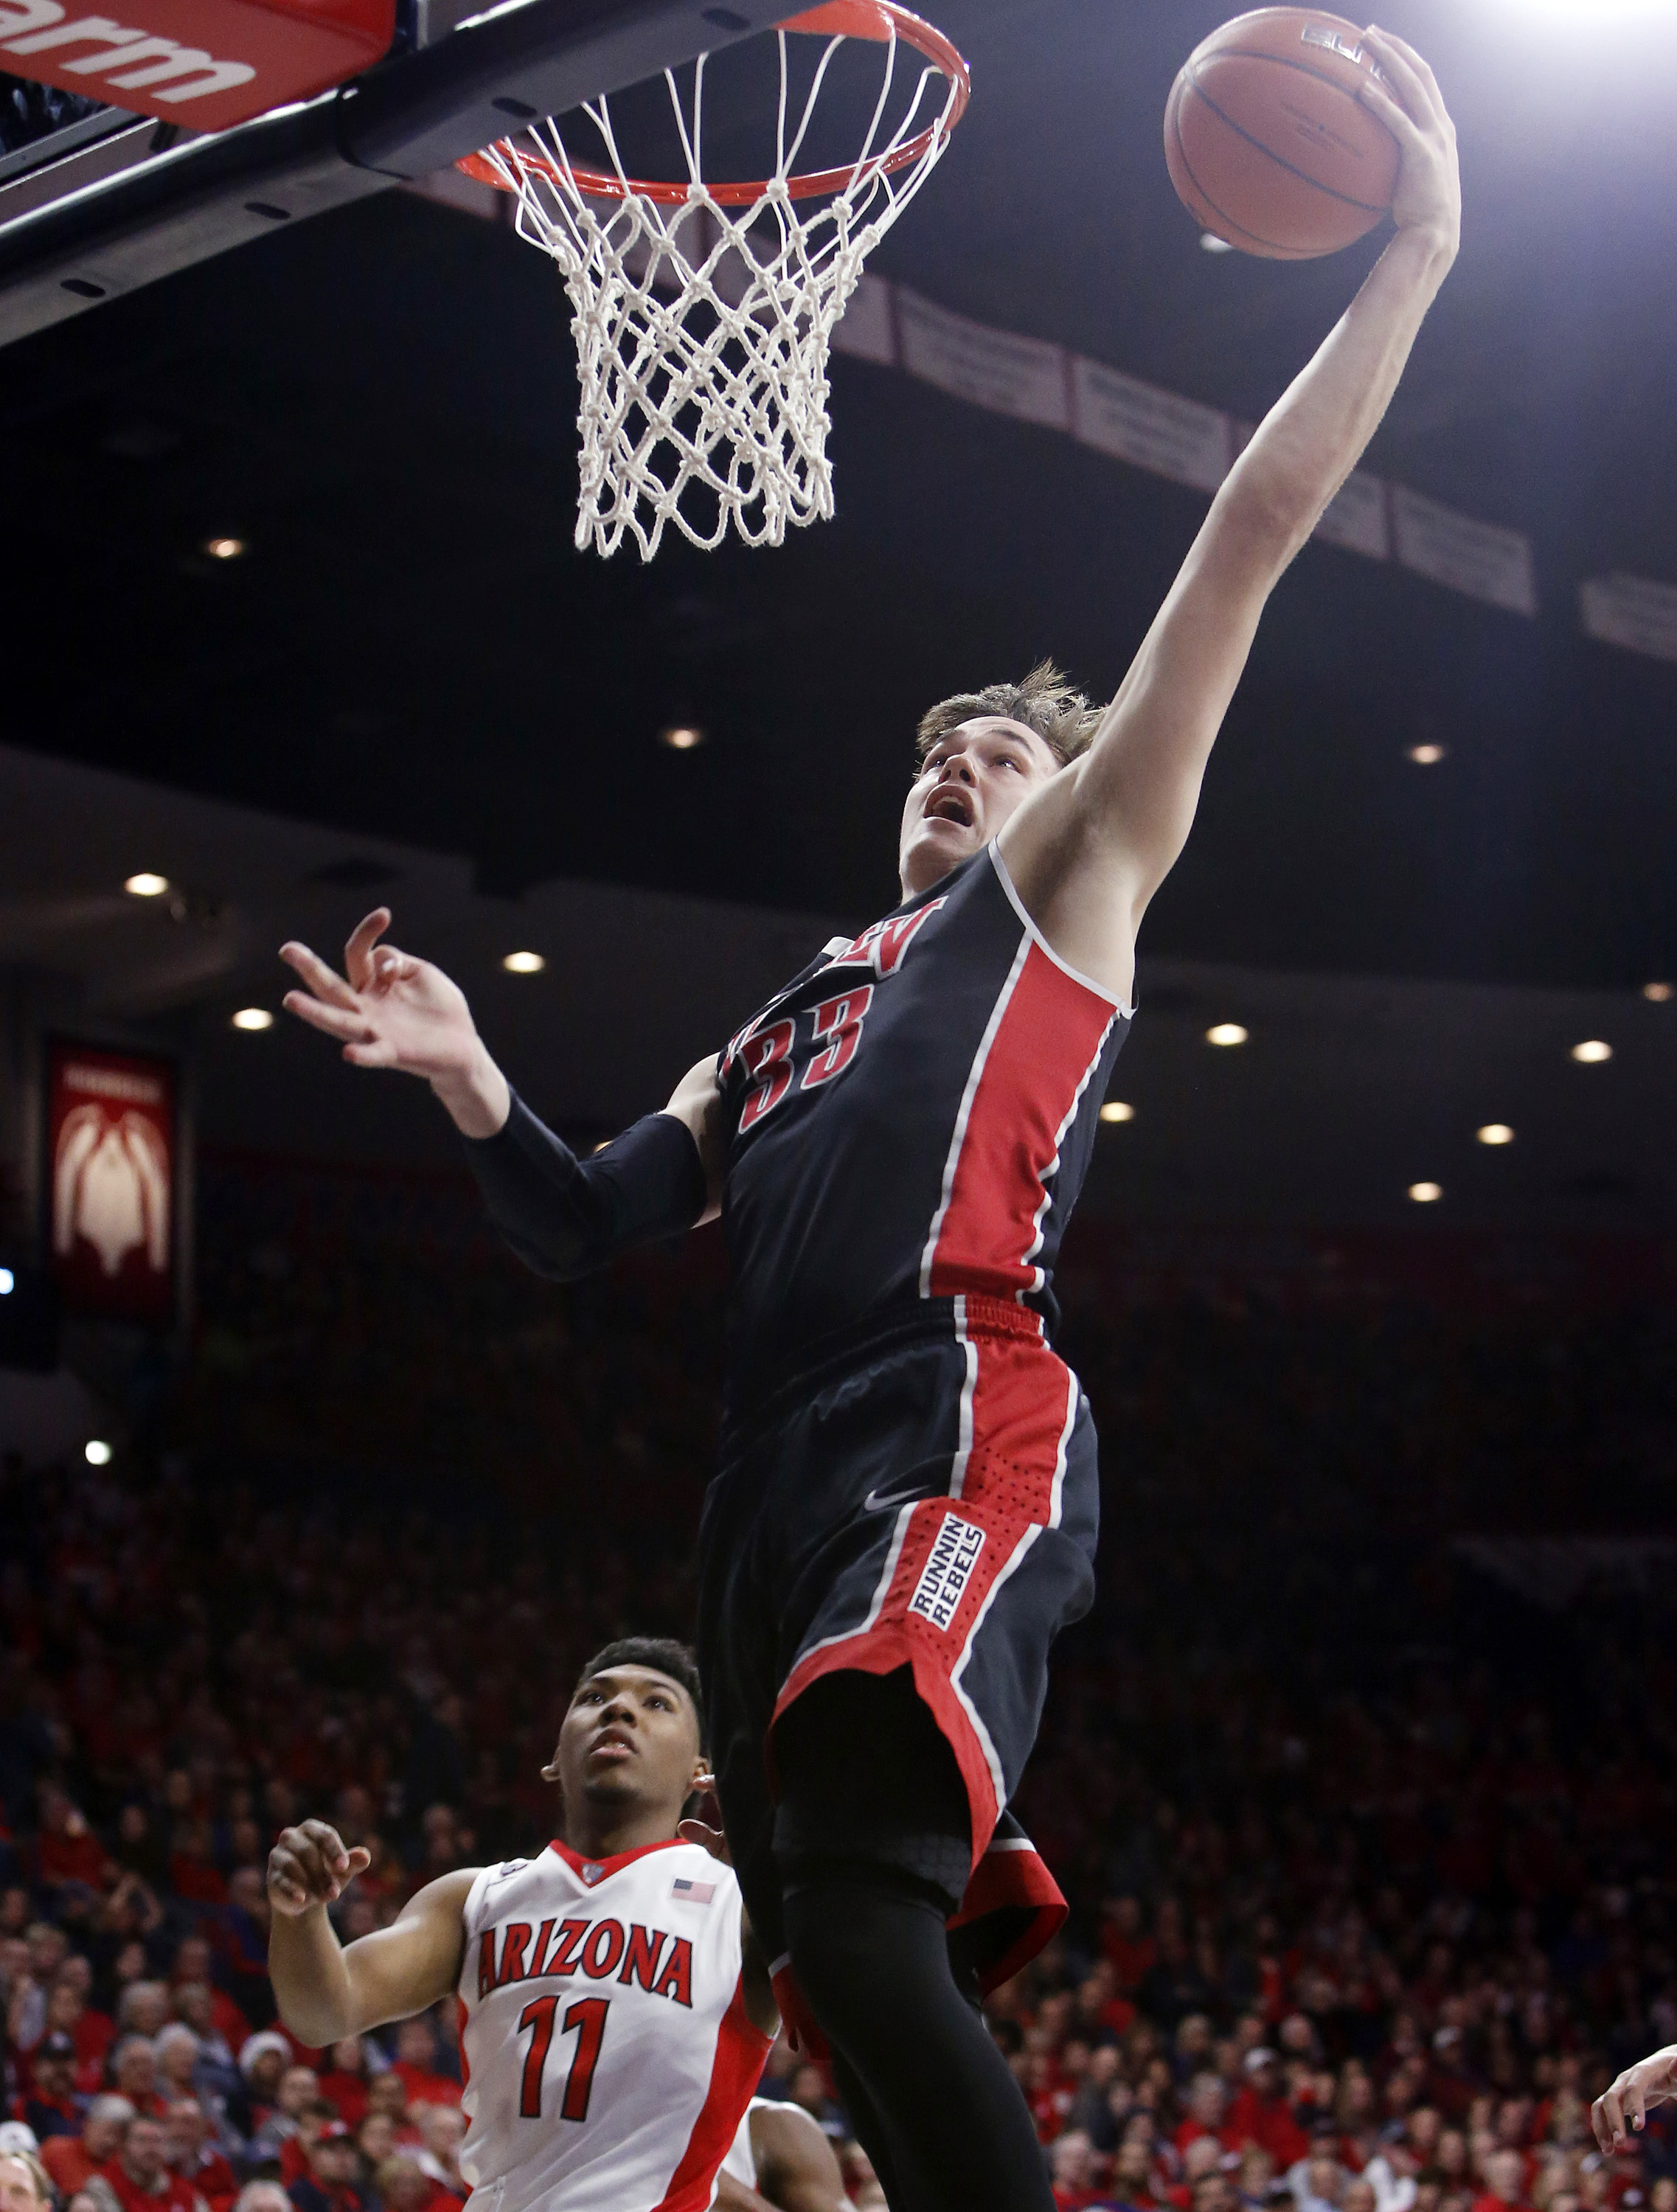 UNLV forward Stephen Zimmerman Jr. (33) drives past Arizona guard Allonzo Trier during the first half of an NCAA college basketball game Saturday, Dec. 19, 2015, in Tucson, Ariz. (AP Photo/Rick Scuteri)